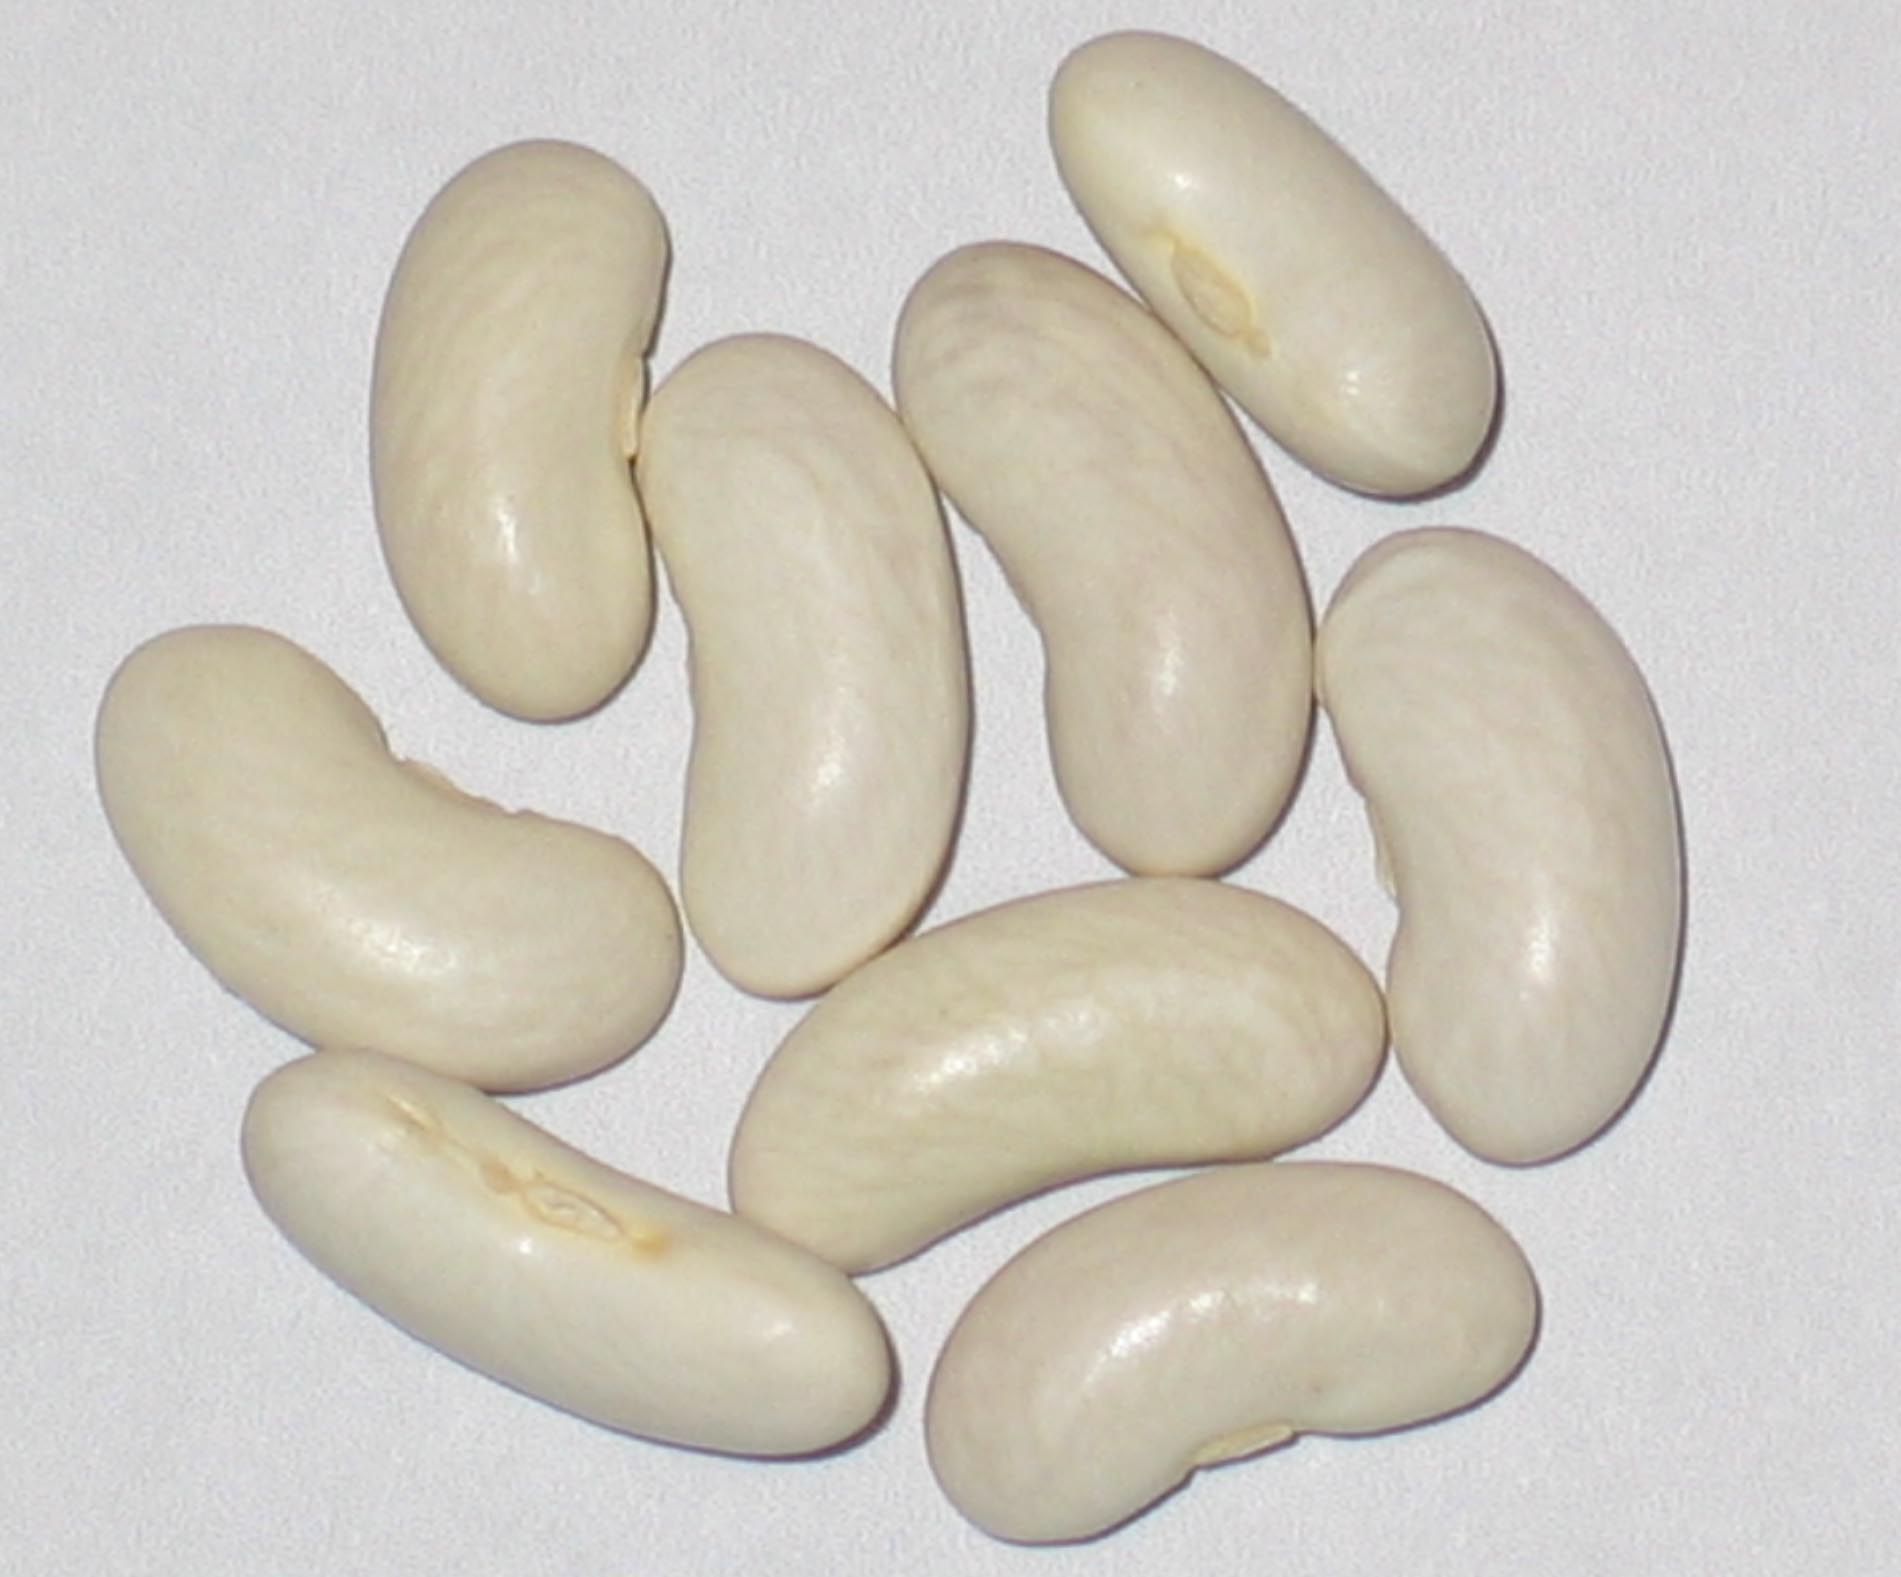 image of Greencrop beans